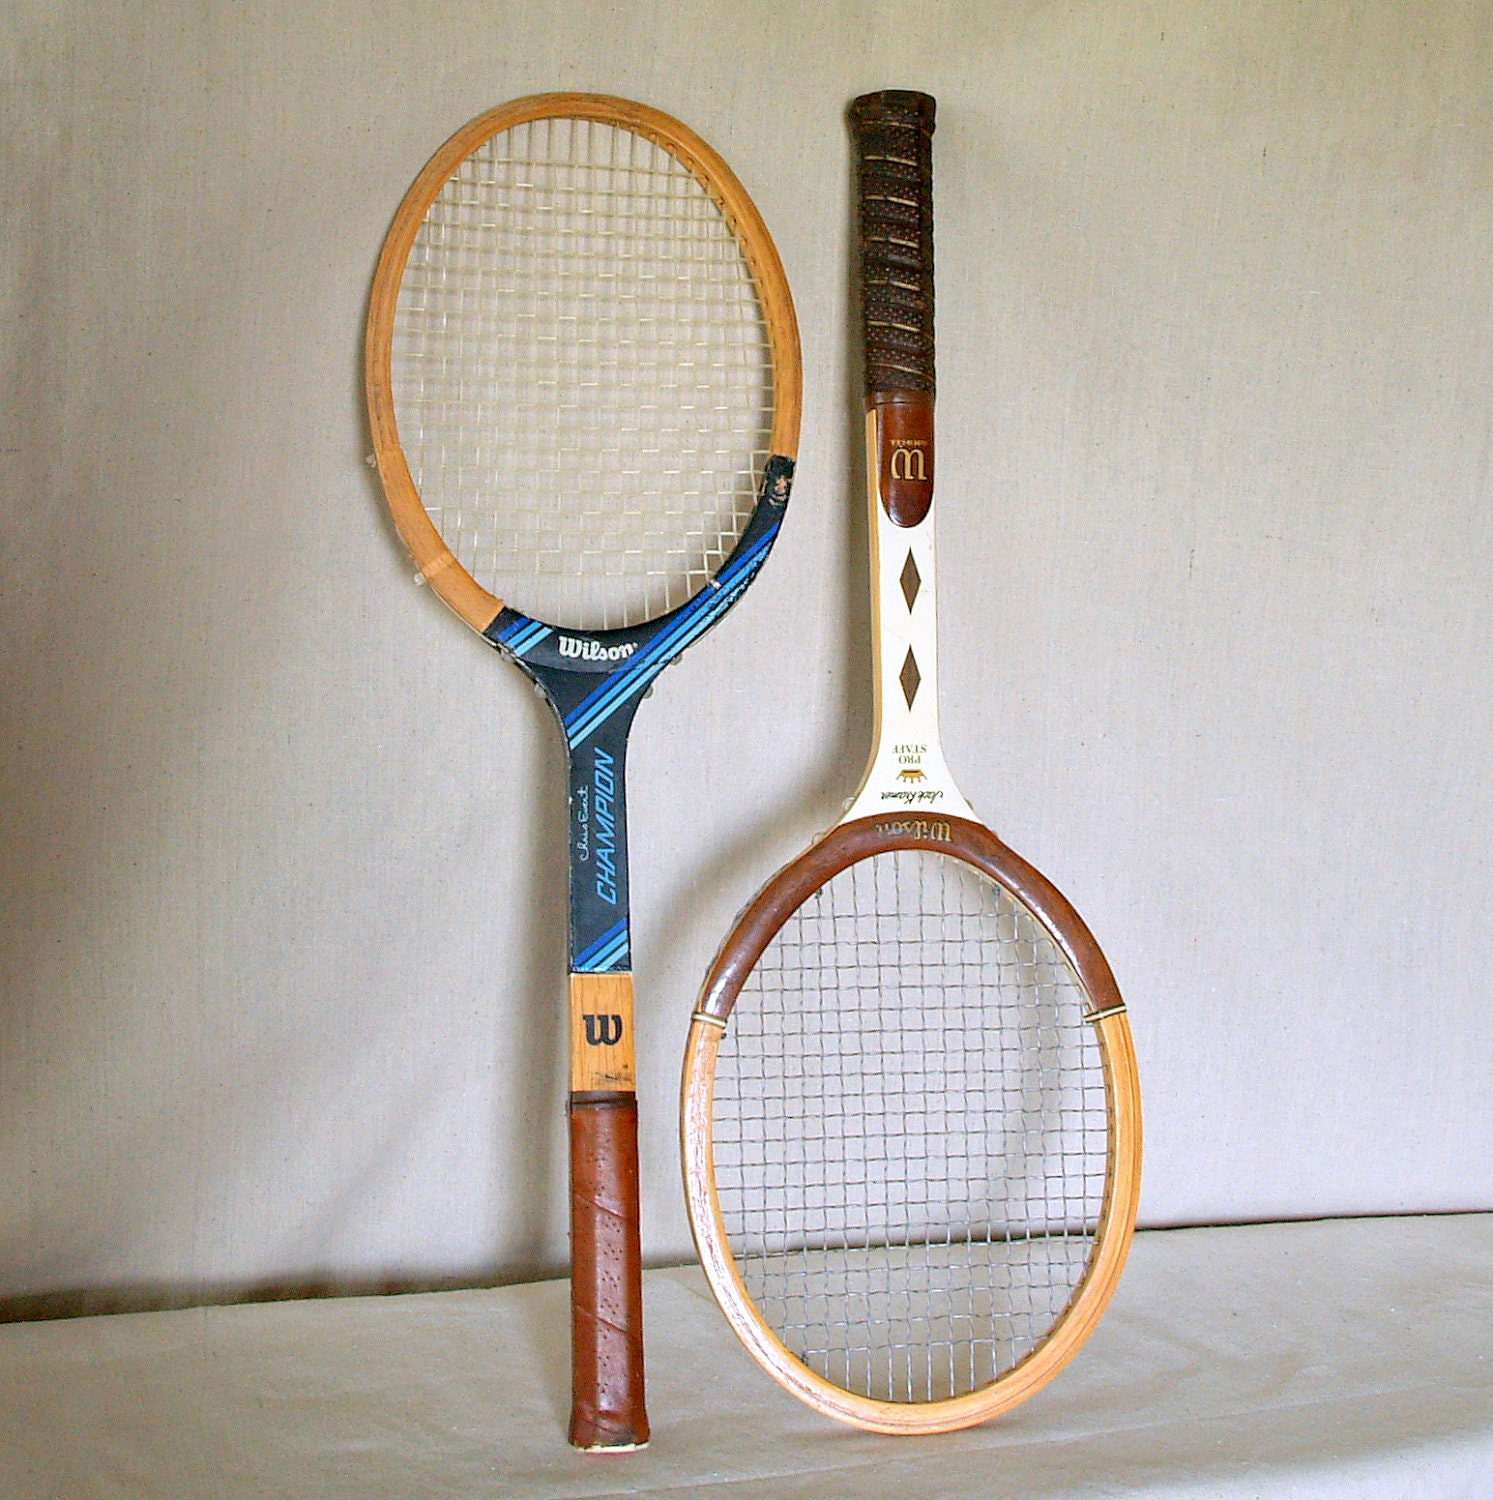 HIS & HERS 2 VINTAGE Tennis Rackets Solid Wood Retro Tennis Racquets Set of 2 Jack Kramer Pro Staff Collection and Chris Evert Champion - ACESFINDSVINTAGE